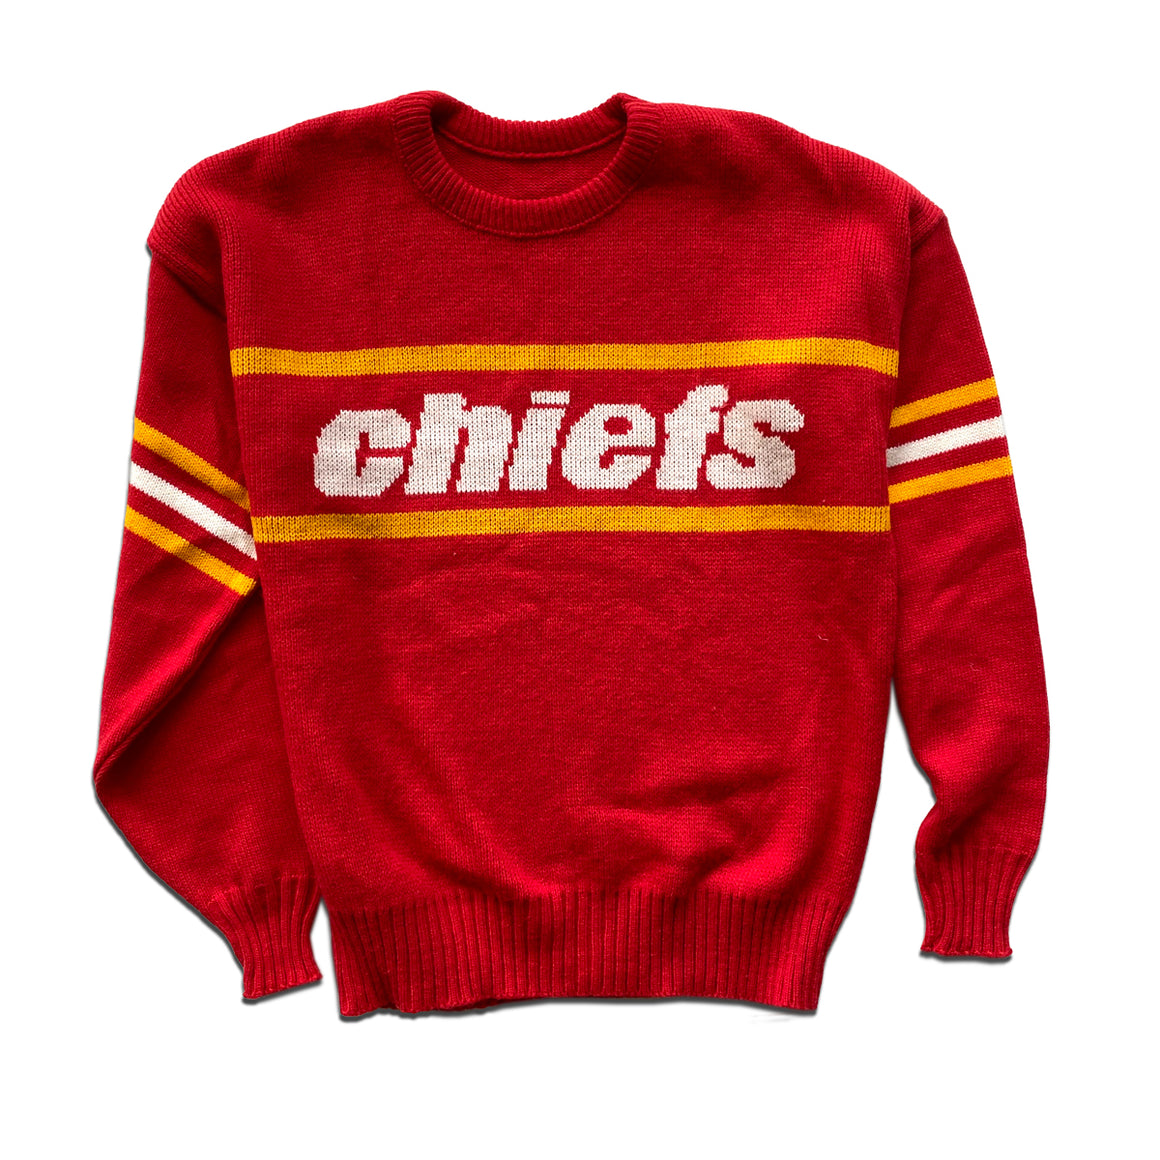 WESTSIDE STOREY VINTAGE | CLIFF ENGLE KC CHIEFS KNIT SWEATER